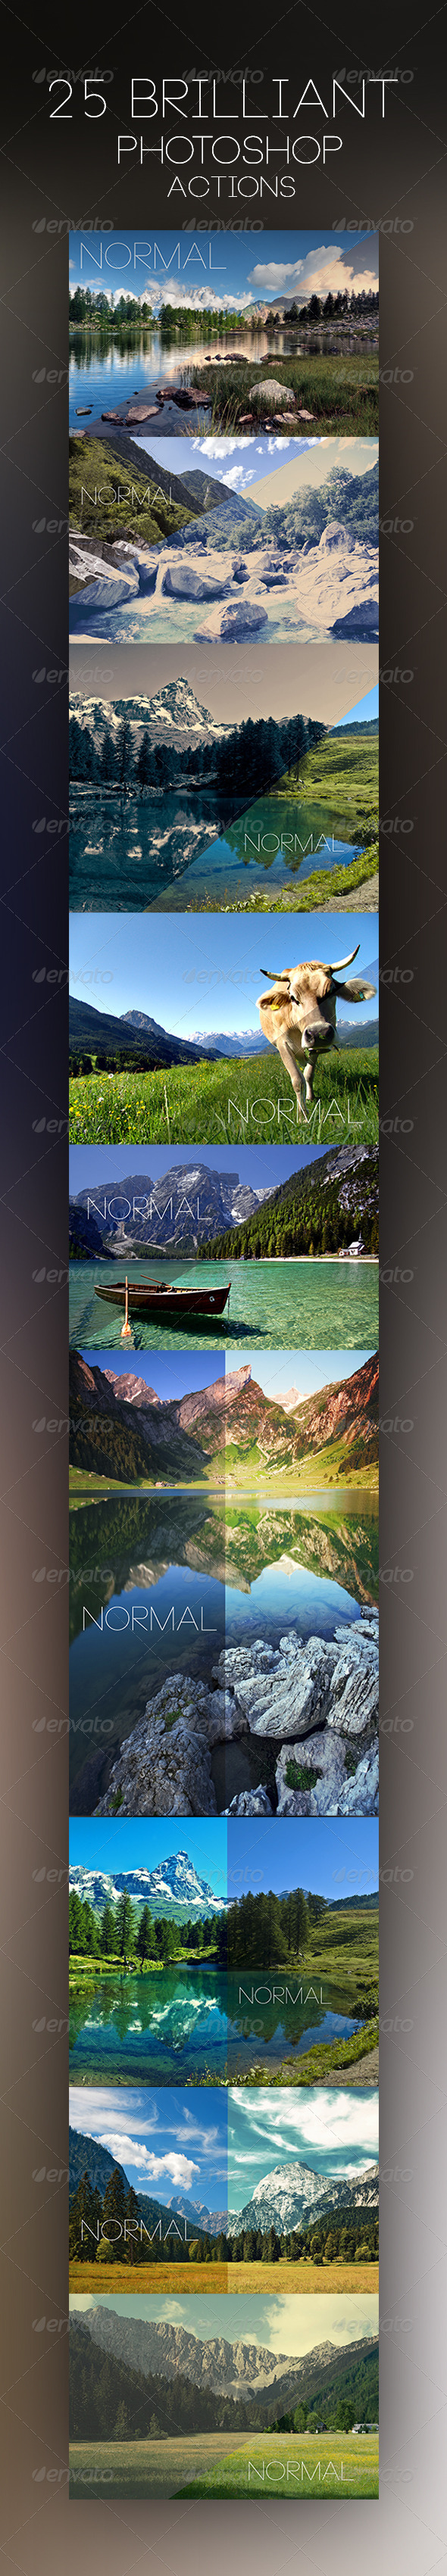 GraphicRiver 25 Brilliant Photoshop Actions 7101764